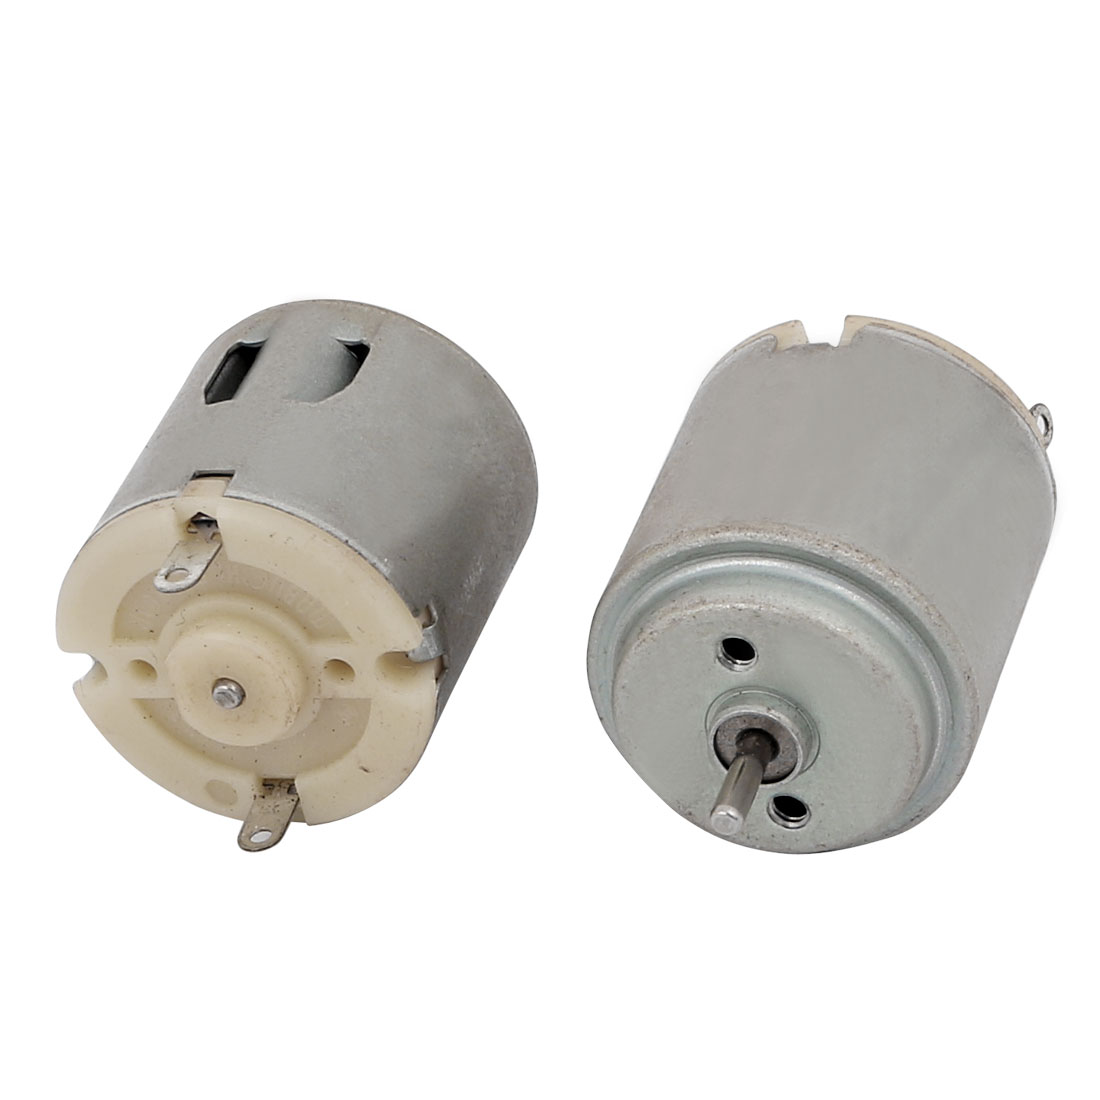 2pcs DC3-6V 4000RPM  Electric Motor 2Terminal Connector f Electrical Tools - image 1 of 1